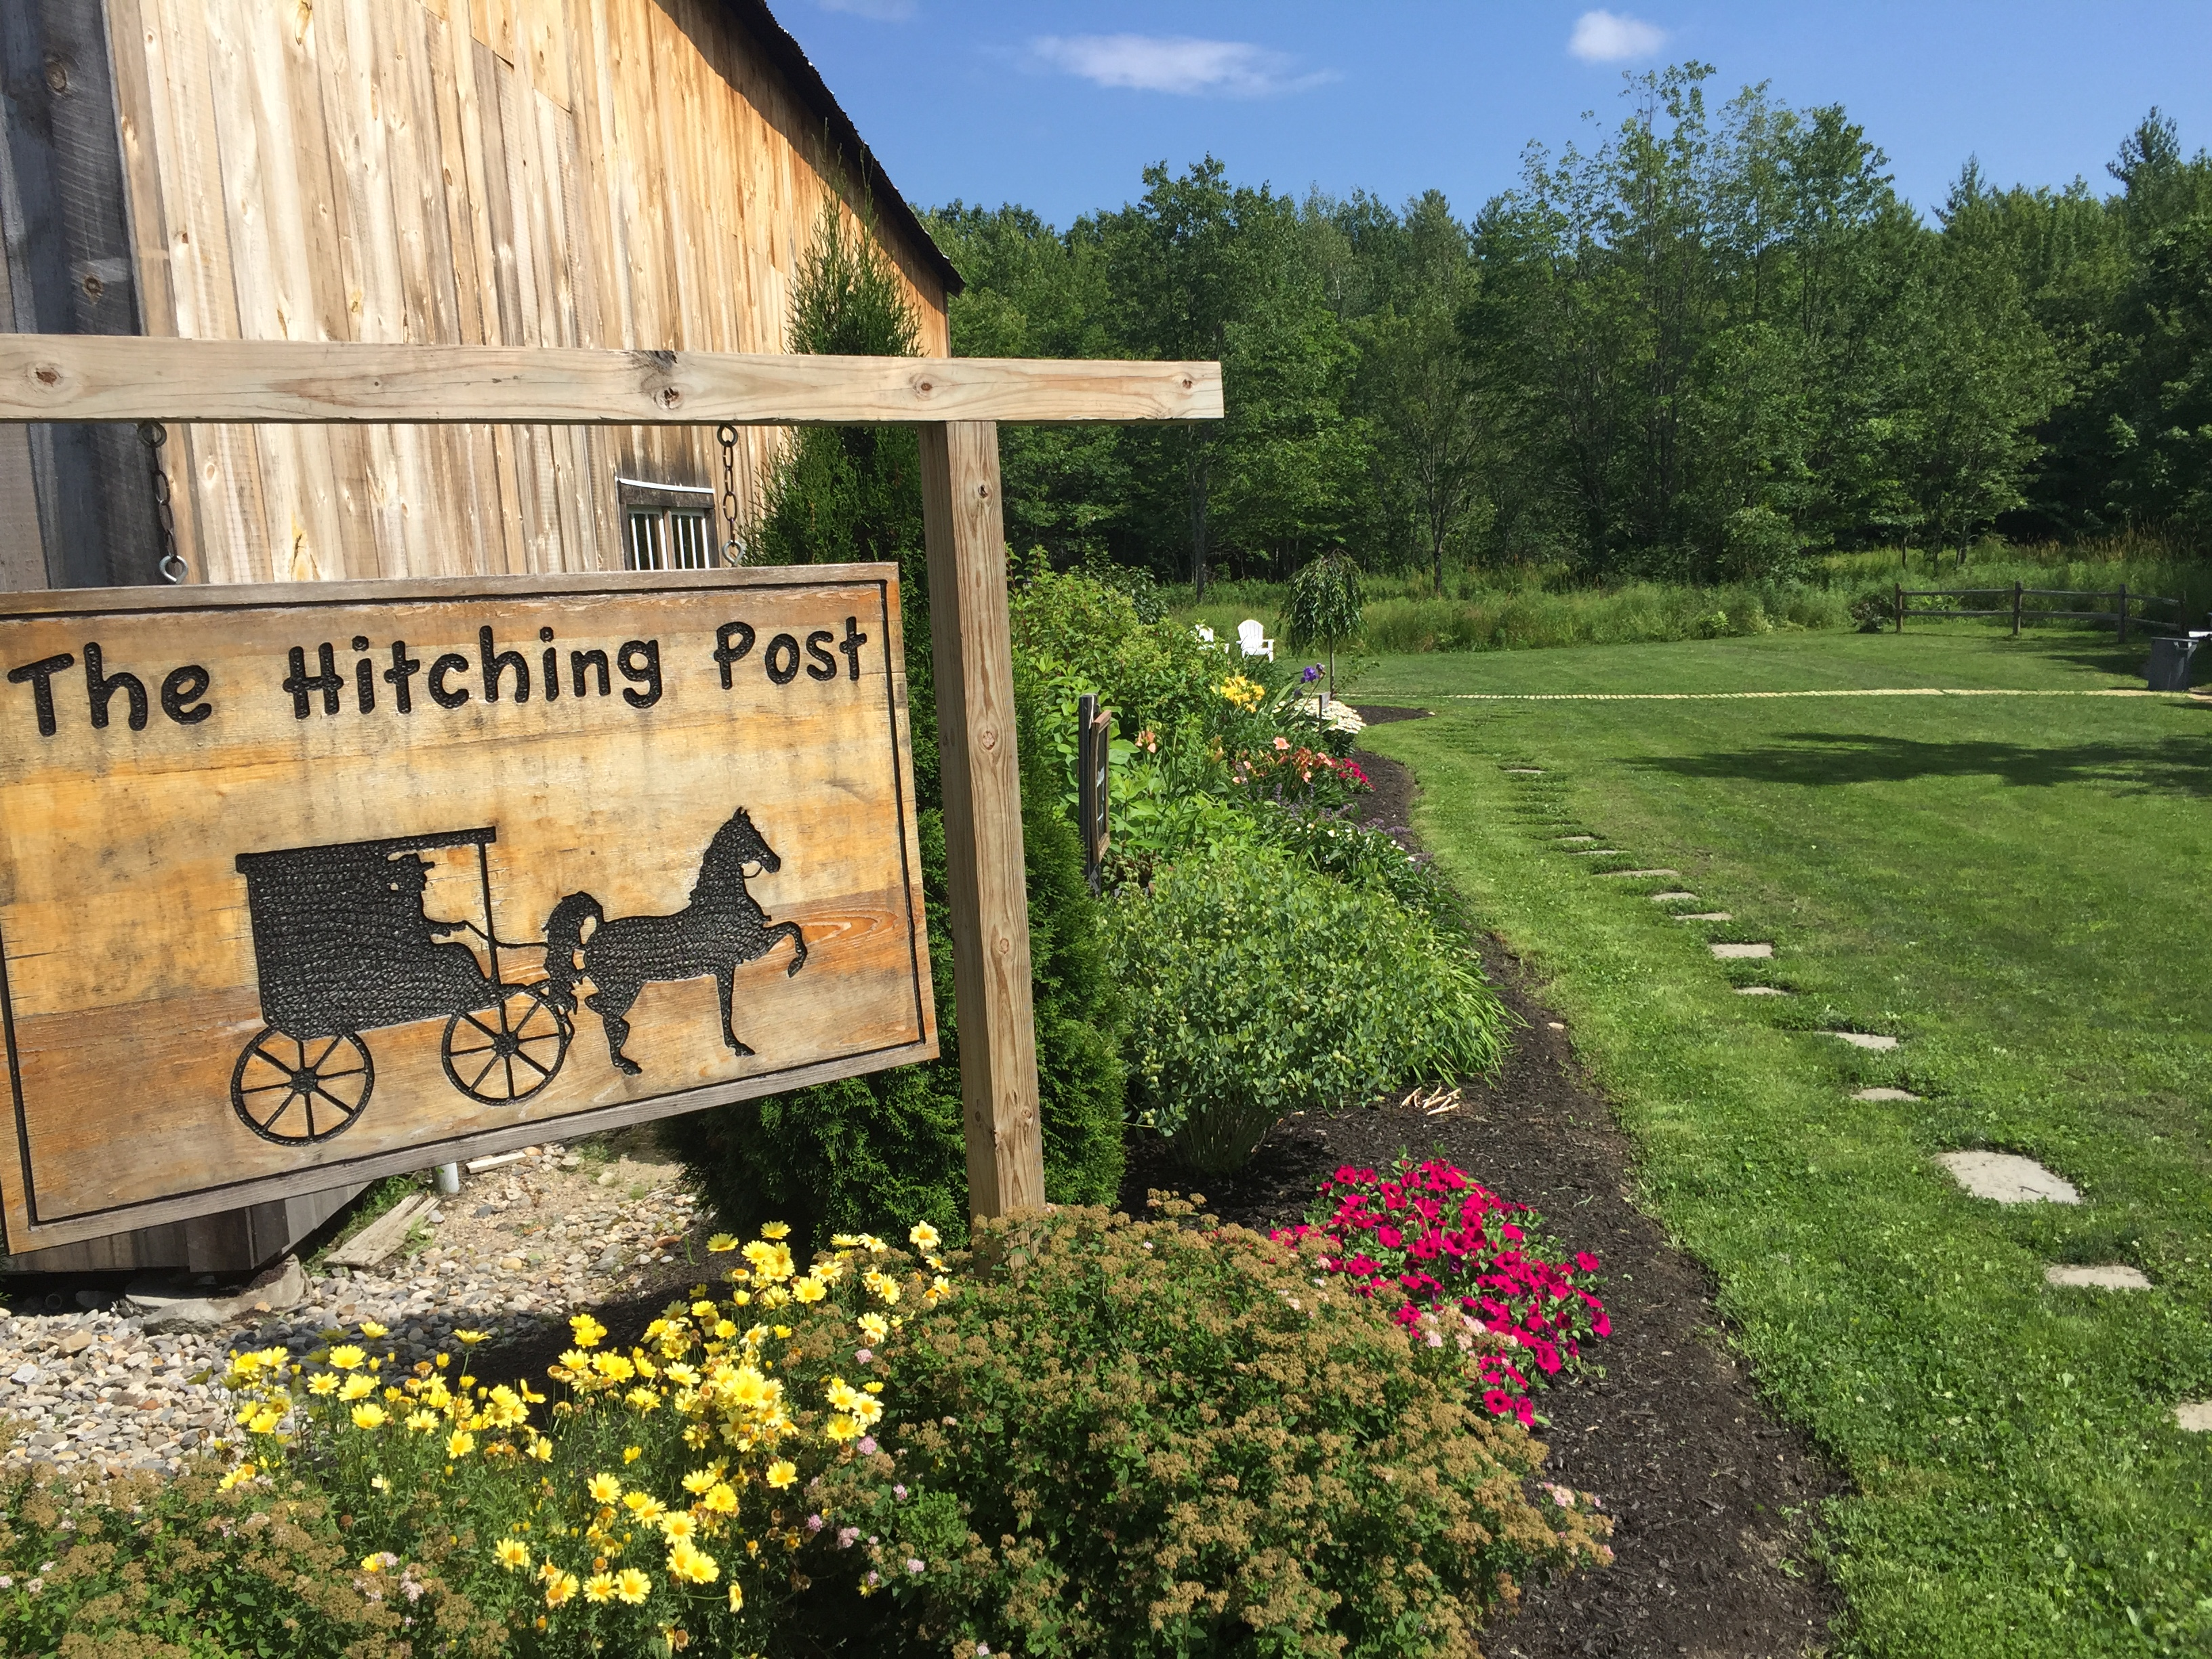 http://bouchardentertainment.com/wp-content/uploads/2017/07/The-Hitching-Post-Dayton-Maine-071517-Bouchard-Sound-Services.jpg